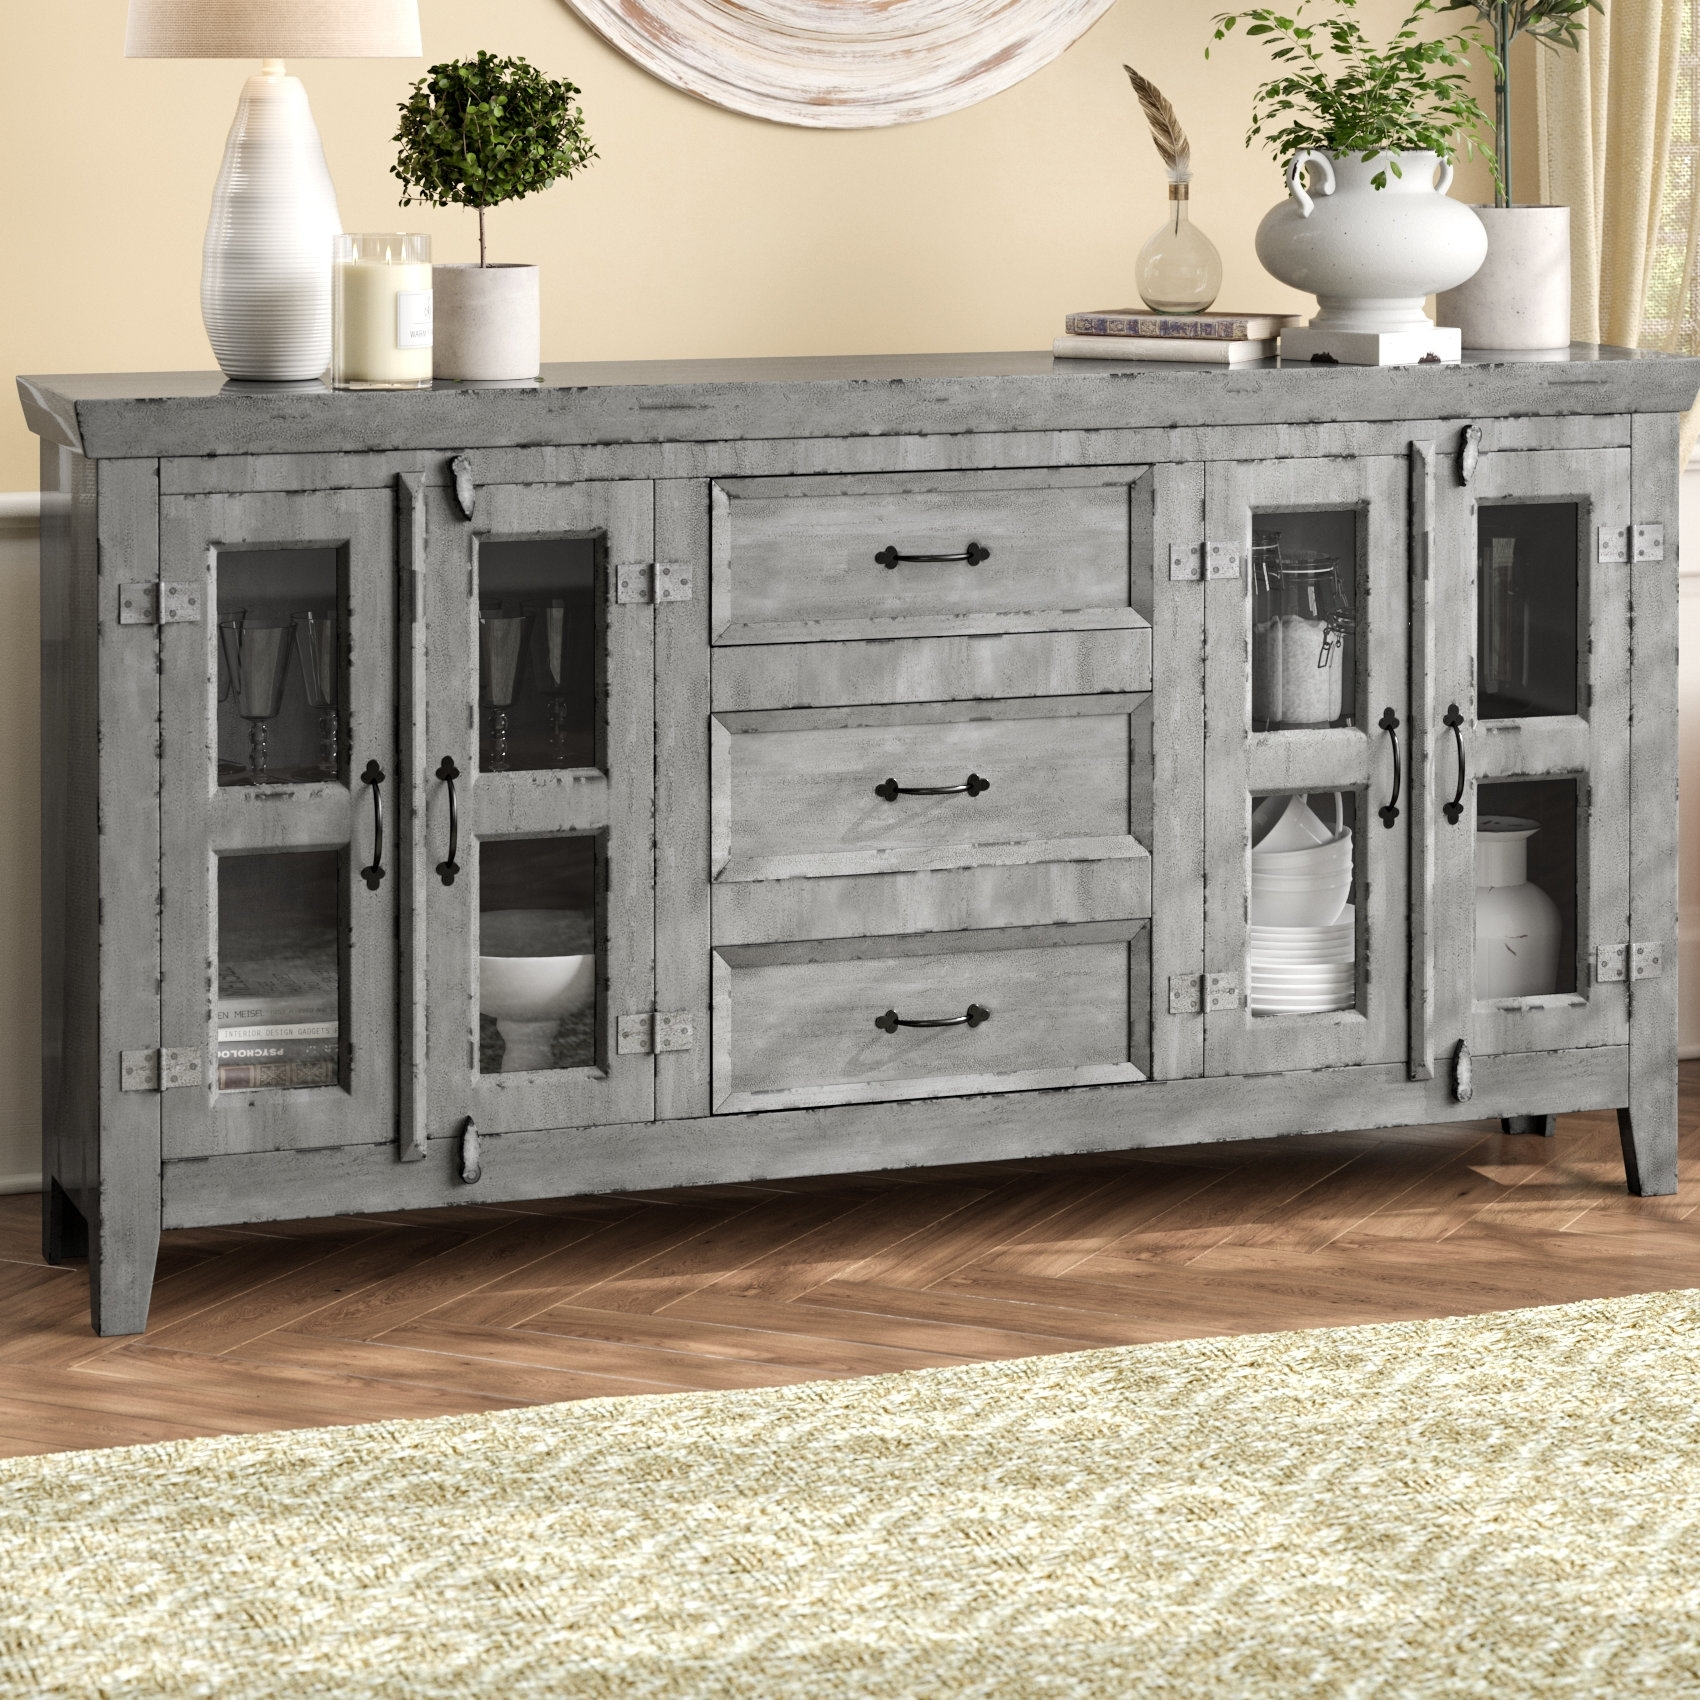 August Grove Fairy Sideboard & Reviews | Wayfair intended for 4-Door/4-Drawer Metal Inserts Sideboards (Image 2 of 30)